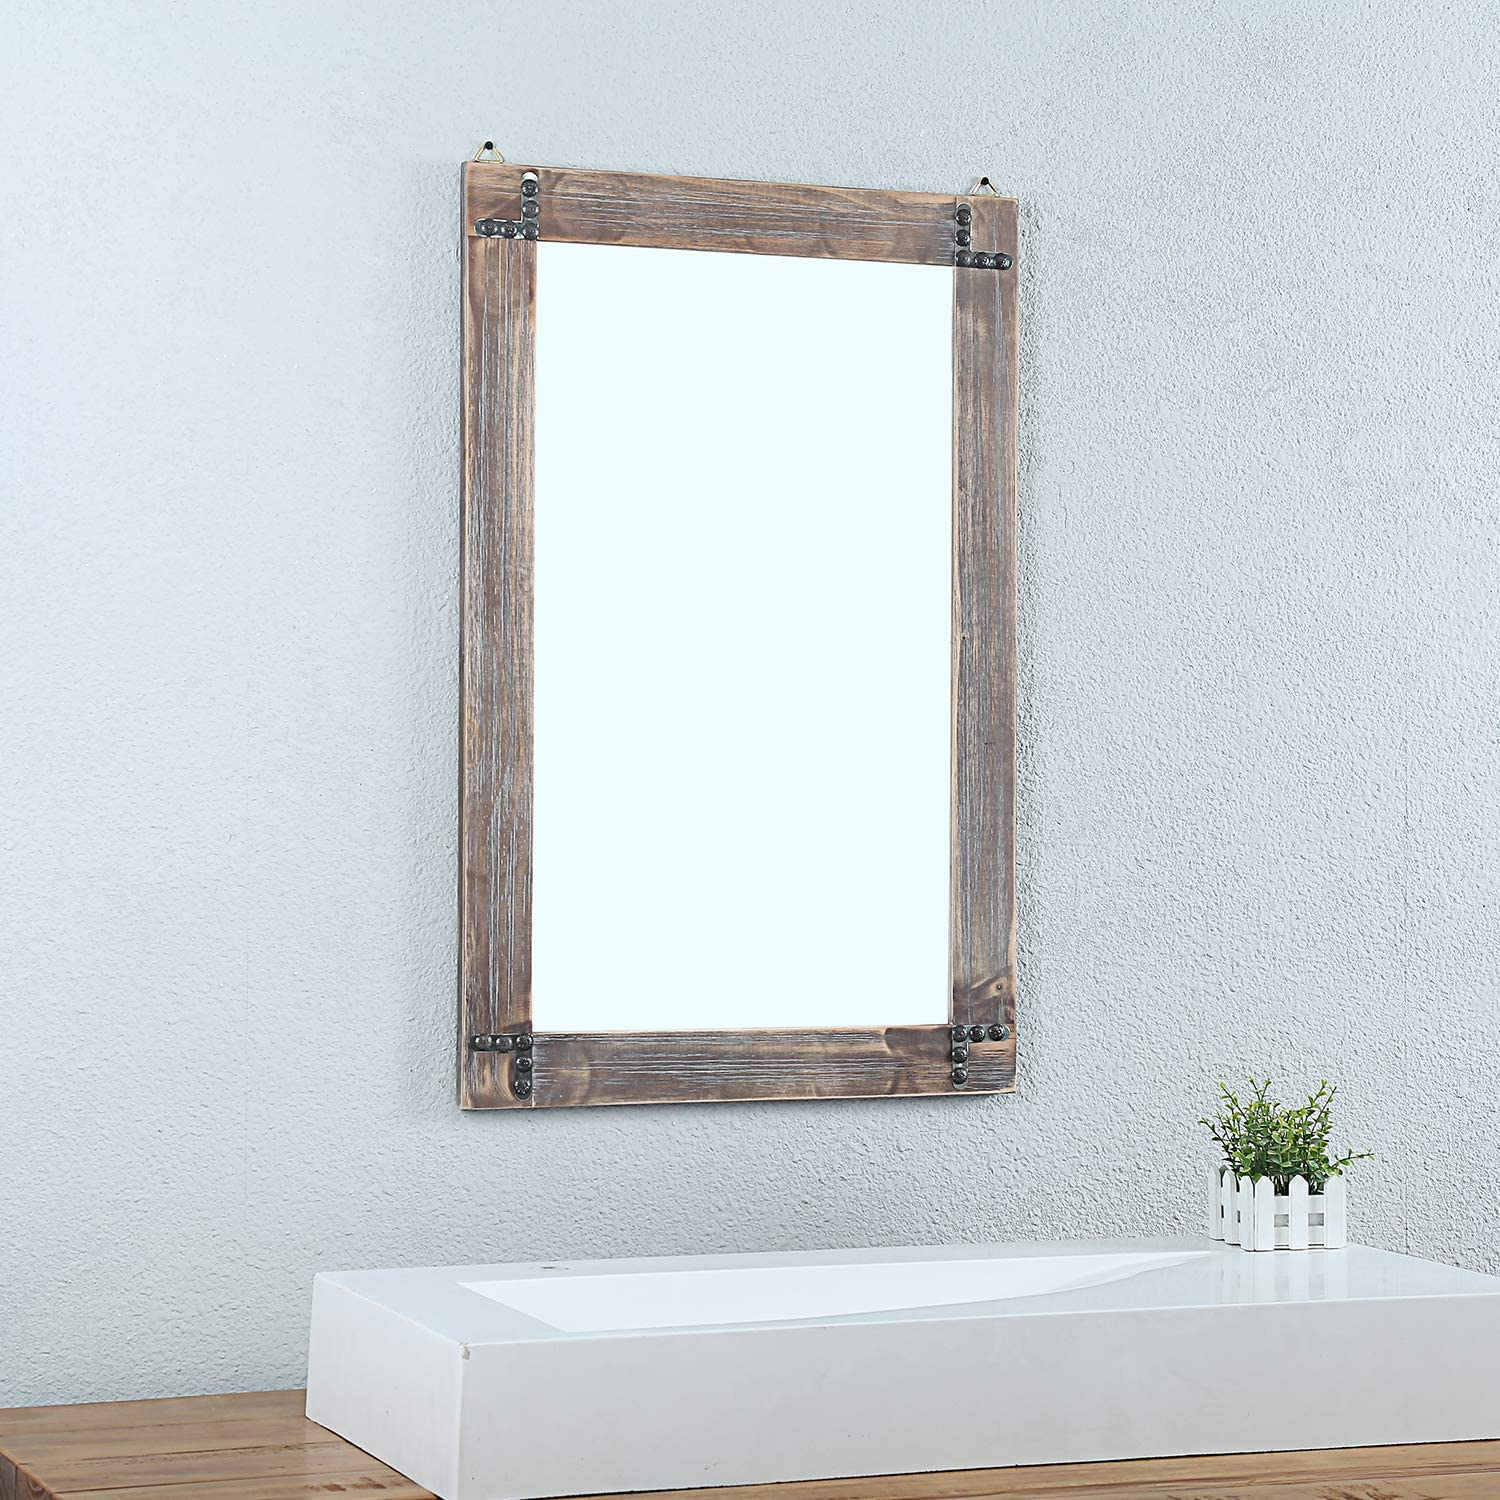 Rustic Wood Frame Hanging Wall Mirror